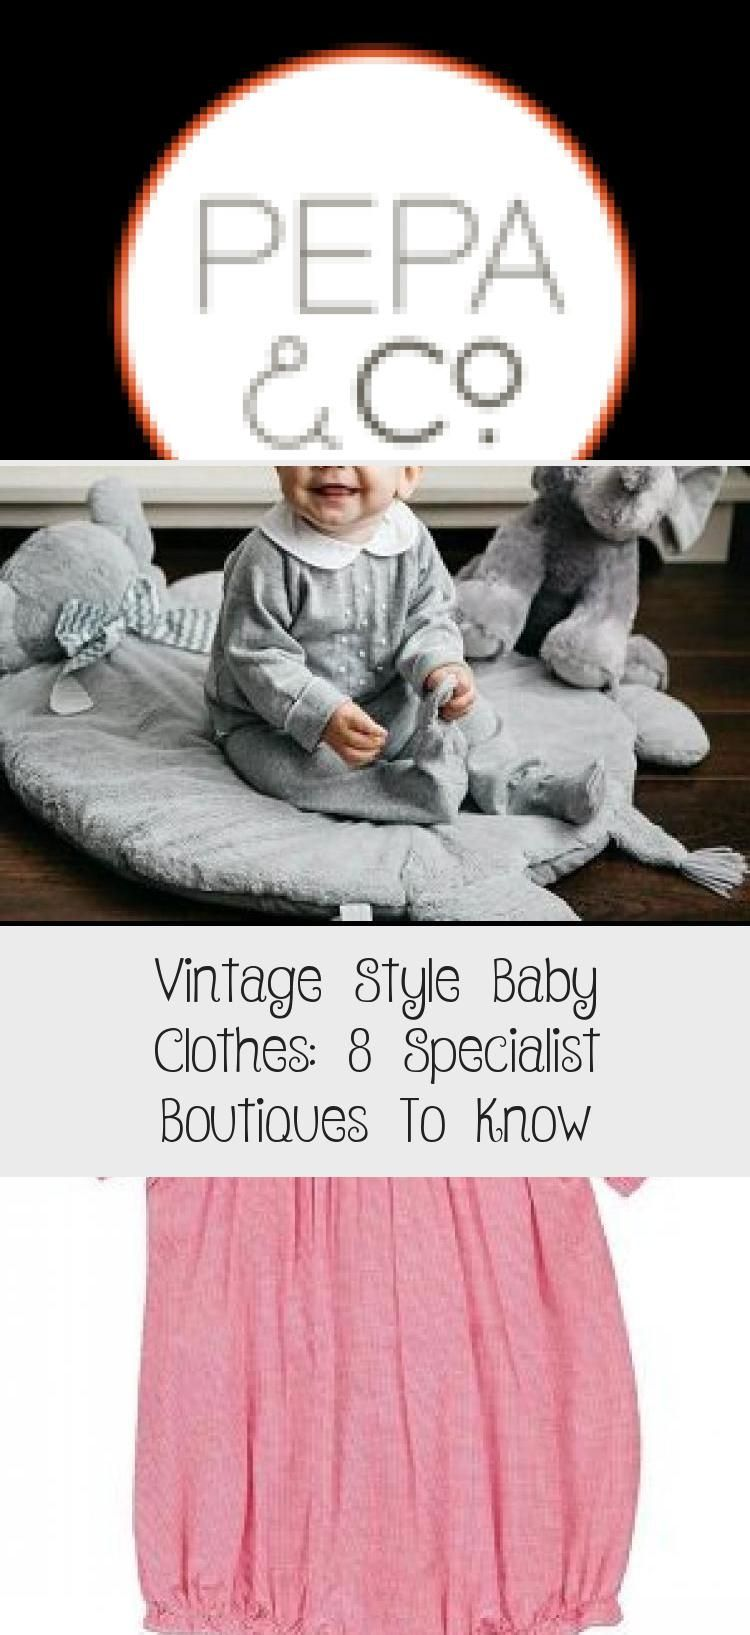 Vintage Style Baby Clothes: 8 Specialist Boutiques To Know - health and diet fitness -  - #Baby #Bou...